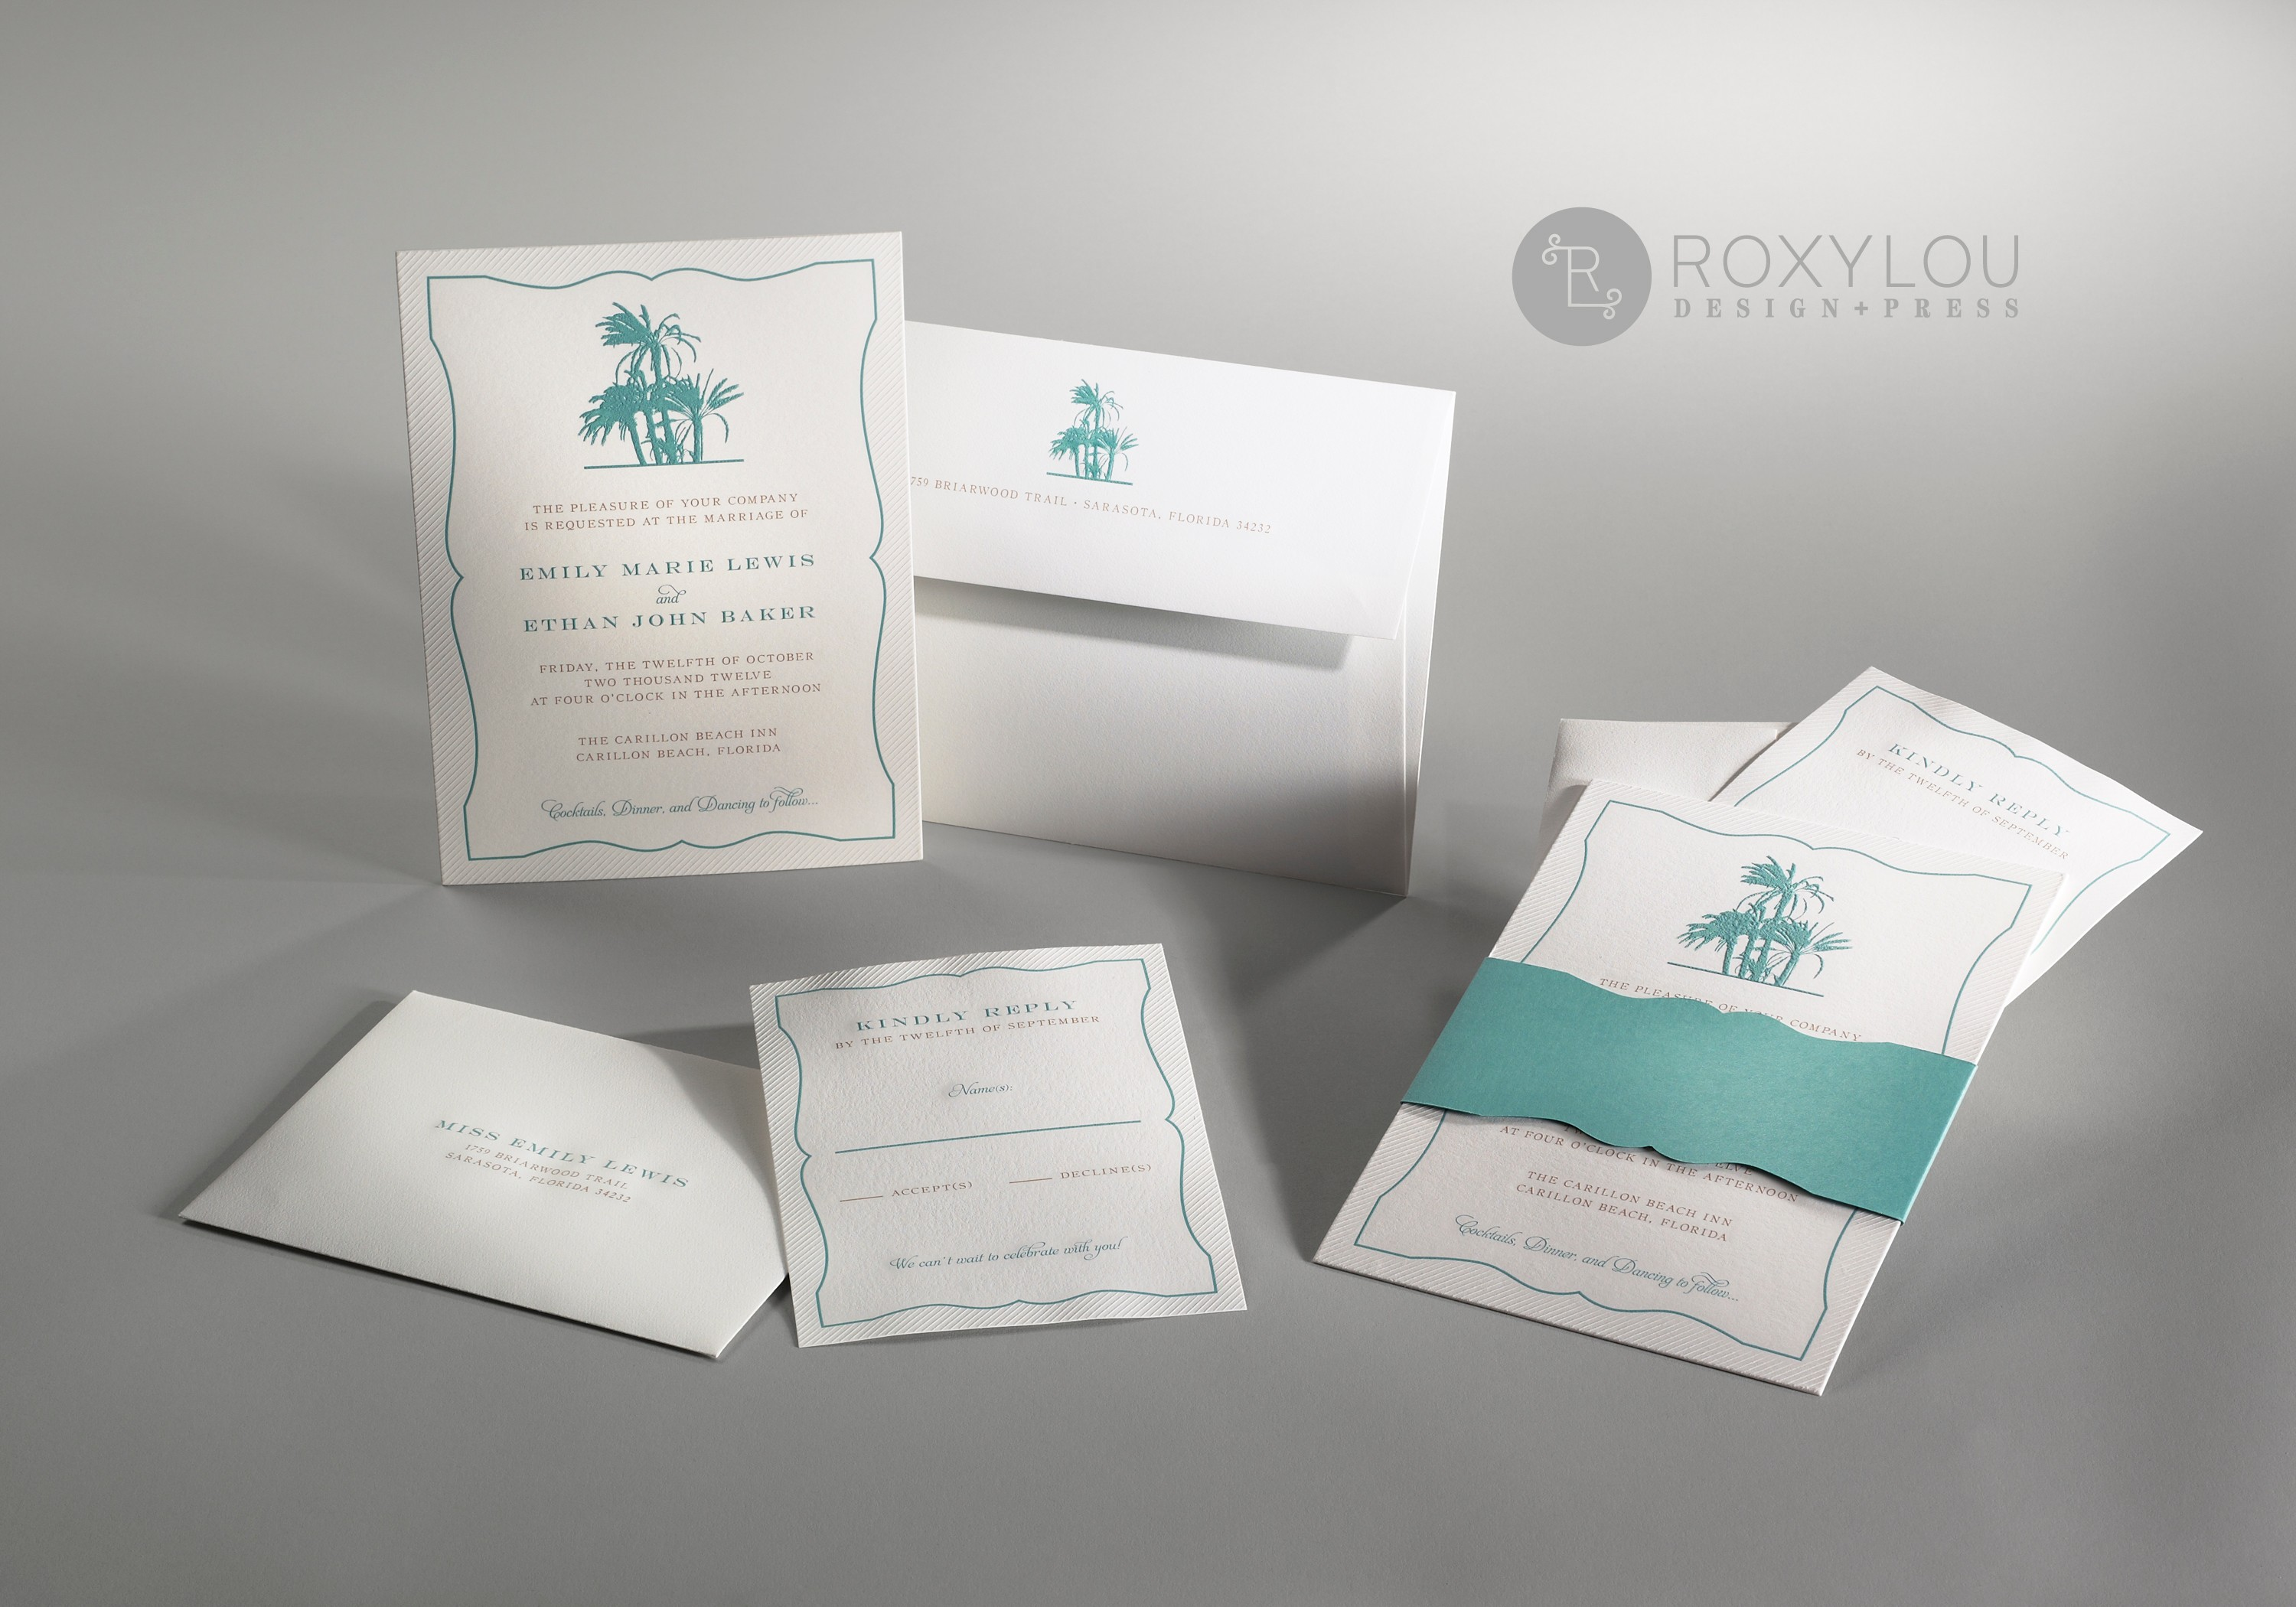 The Palms invitation suite includes an embossed and engraved invitation card with a die-cut accent wrap.  Insert cards are embossed and engraved and envelope is engraved with a die-cut liner.  Perfect for your beach wedding!